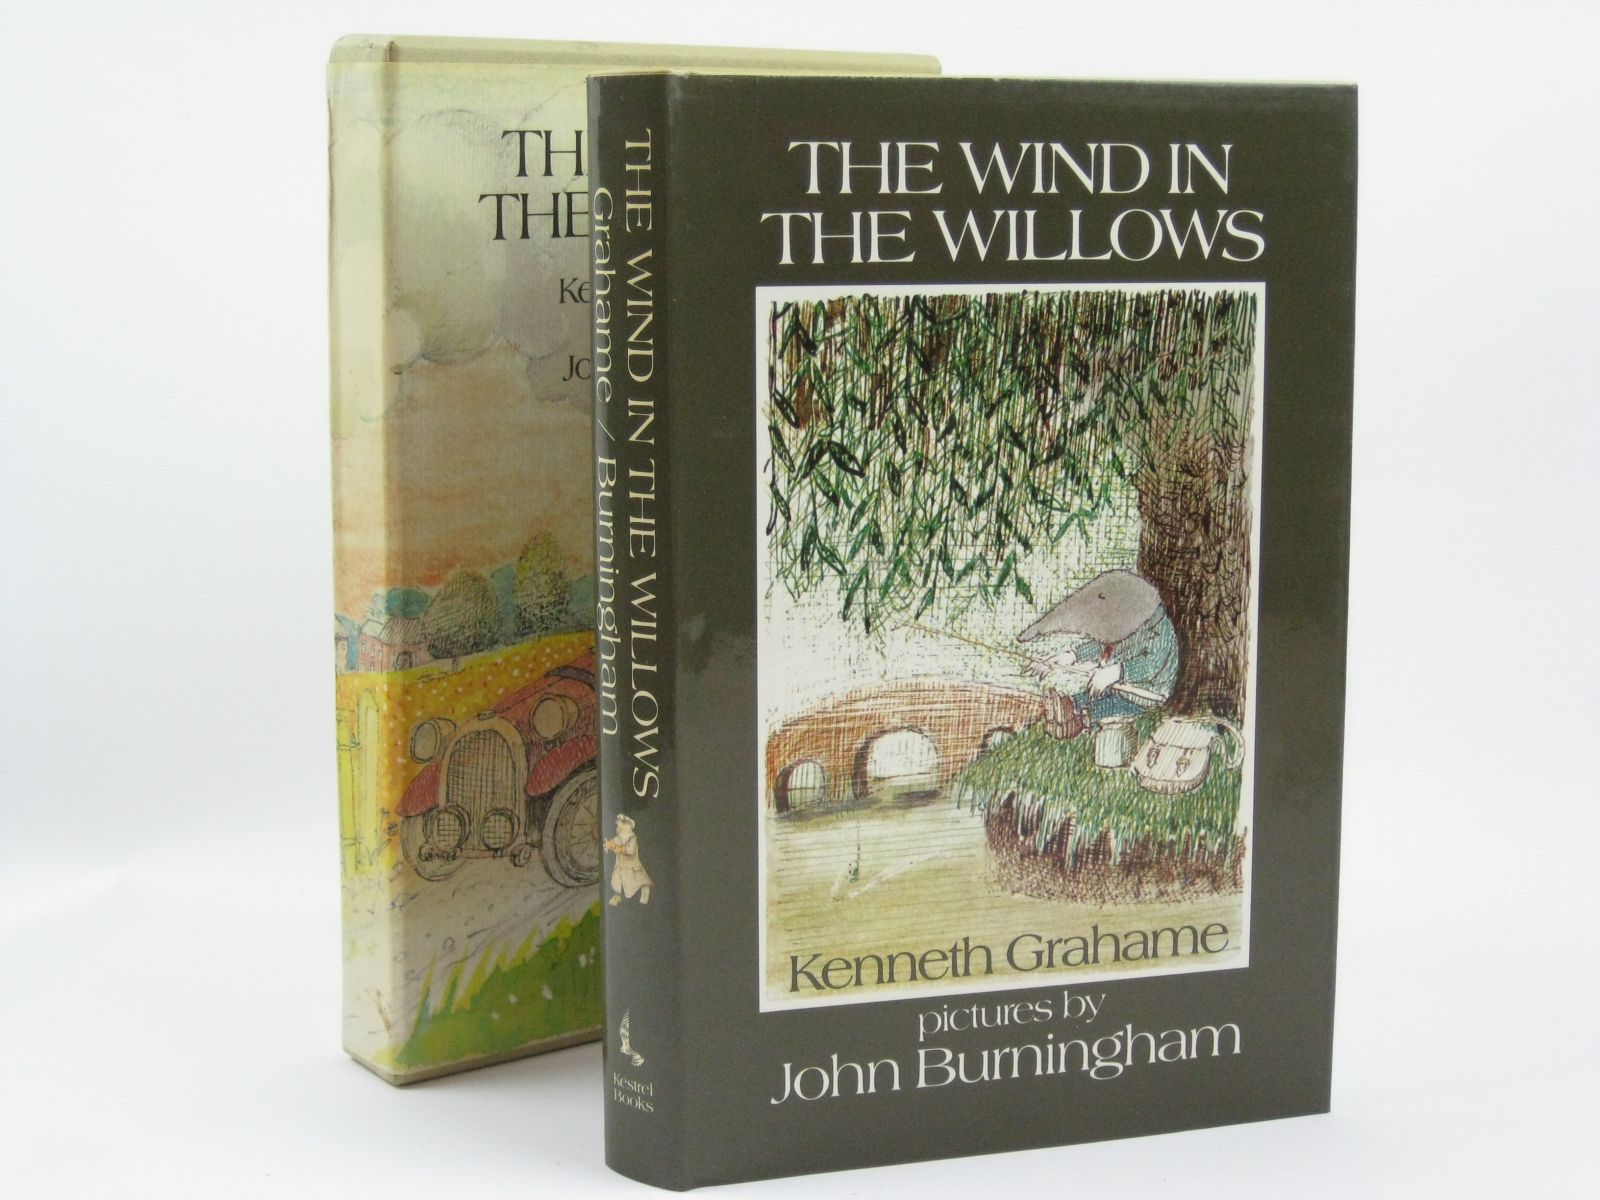 Photo of THE WIND IN THE WILLOWS written by Grahame, Kenneth illustrated by Burningham, John published by Kestrel Books (STOCK CODE: 1406051)  for sale by Stella & Rose's Books